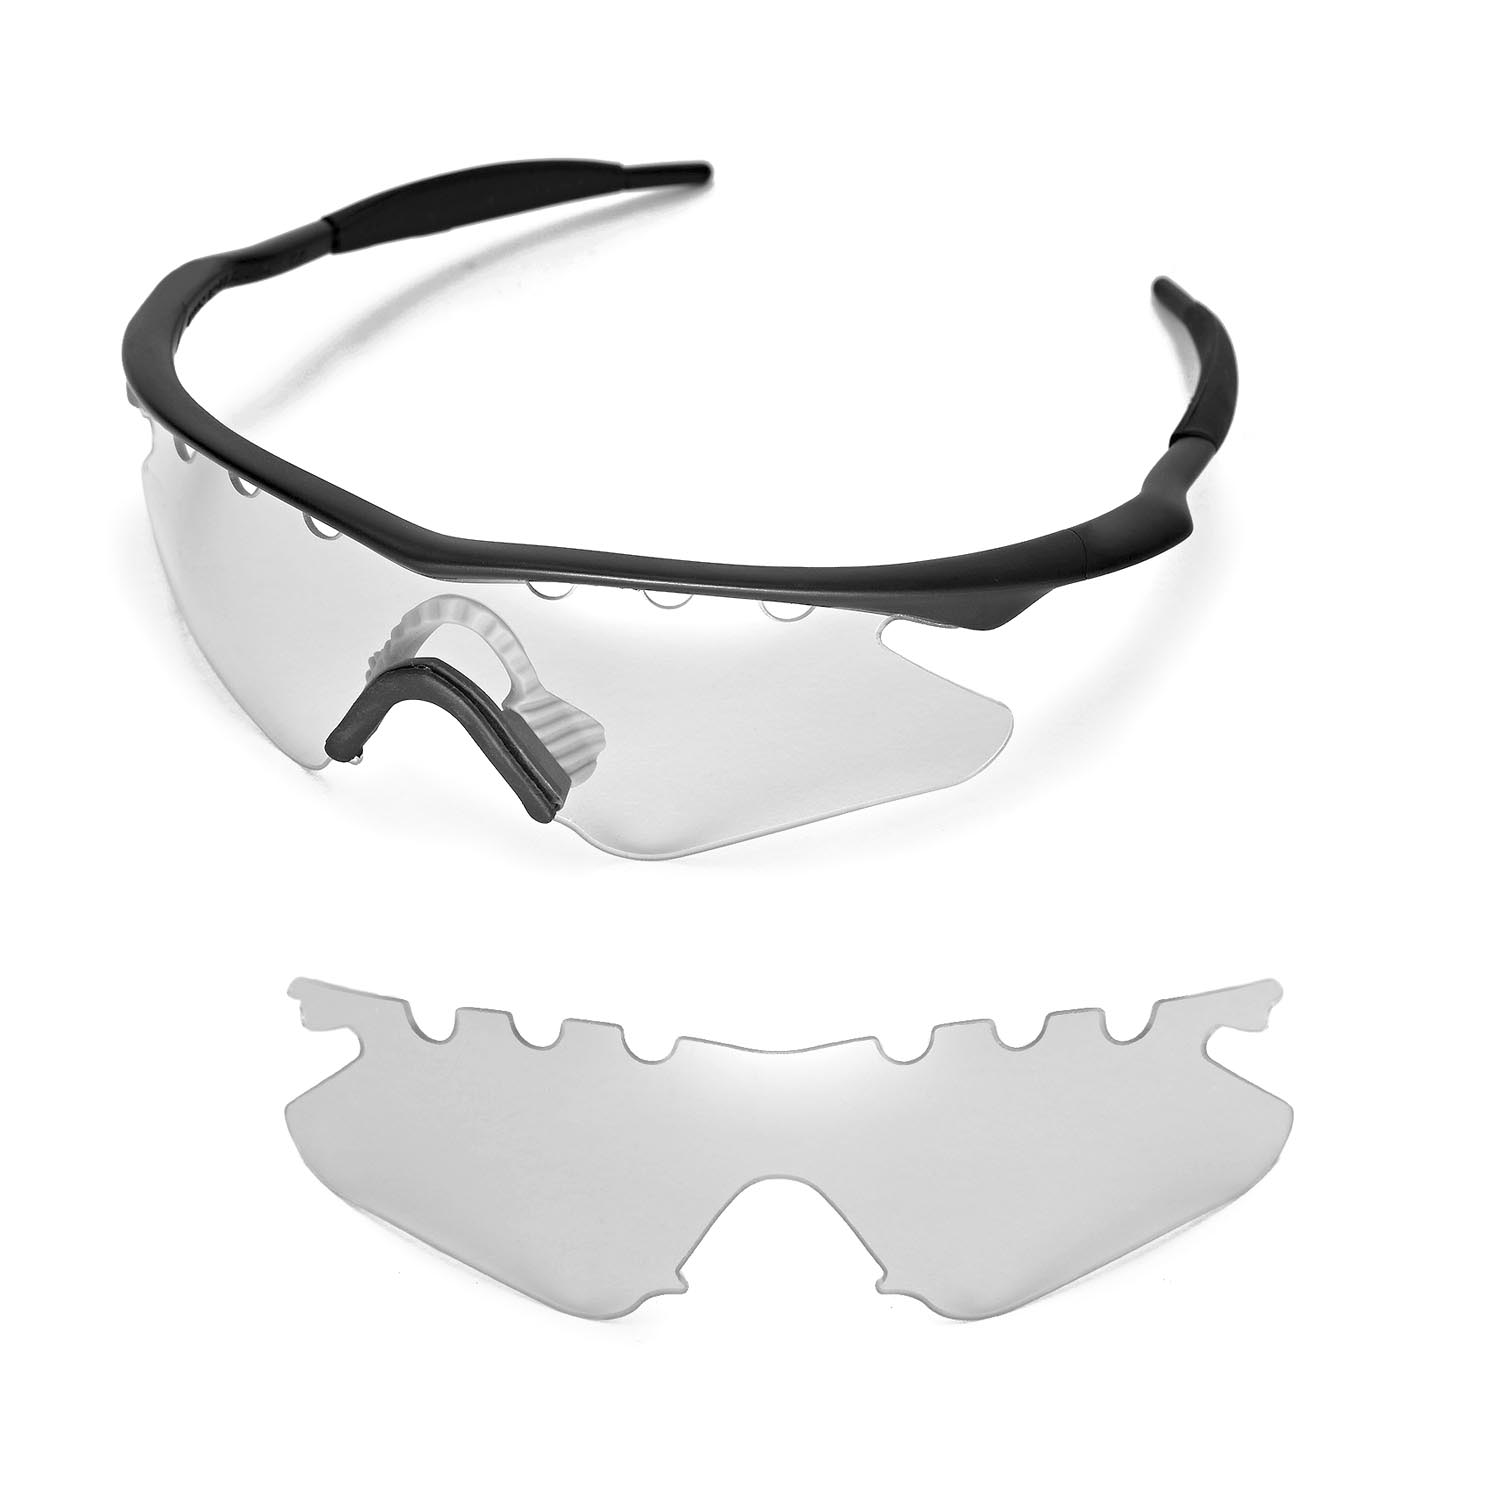 New Walleva Clear Vented Replacemen t Lenses for Oakley M Frame ...